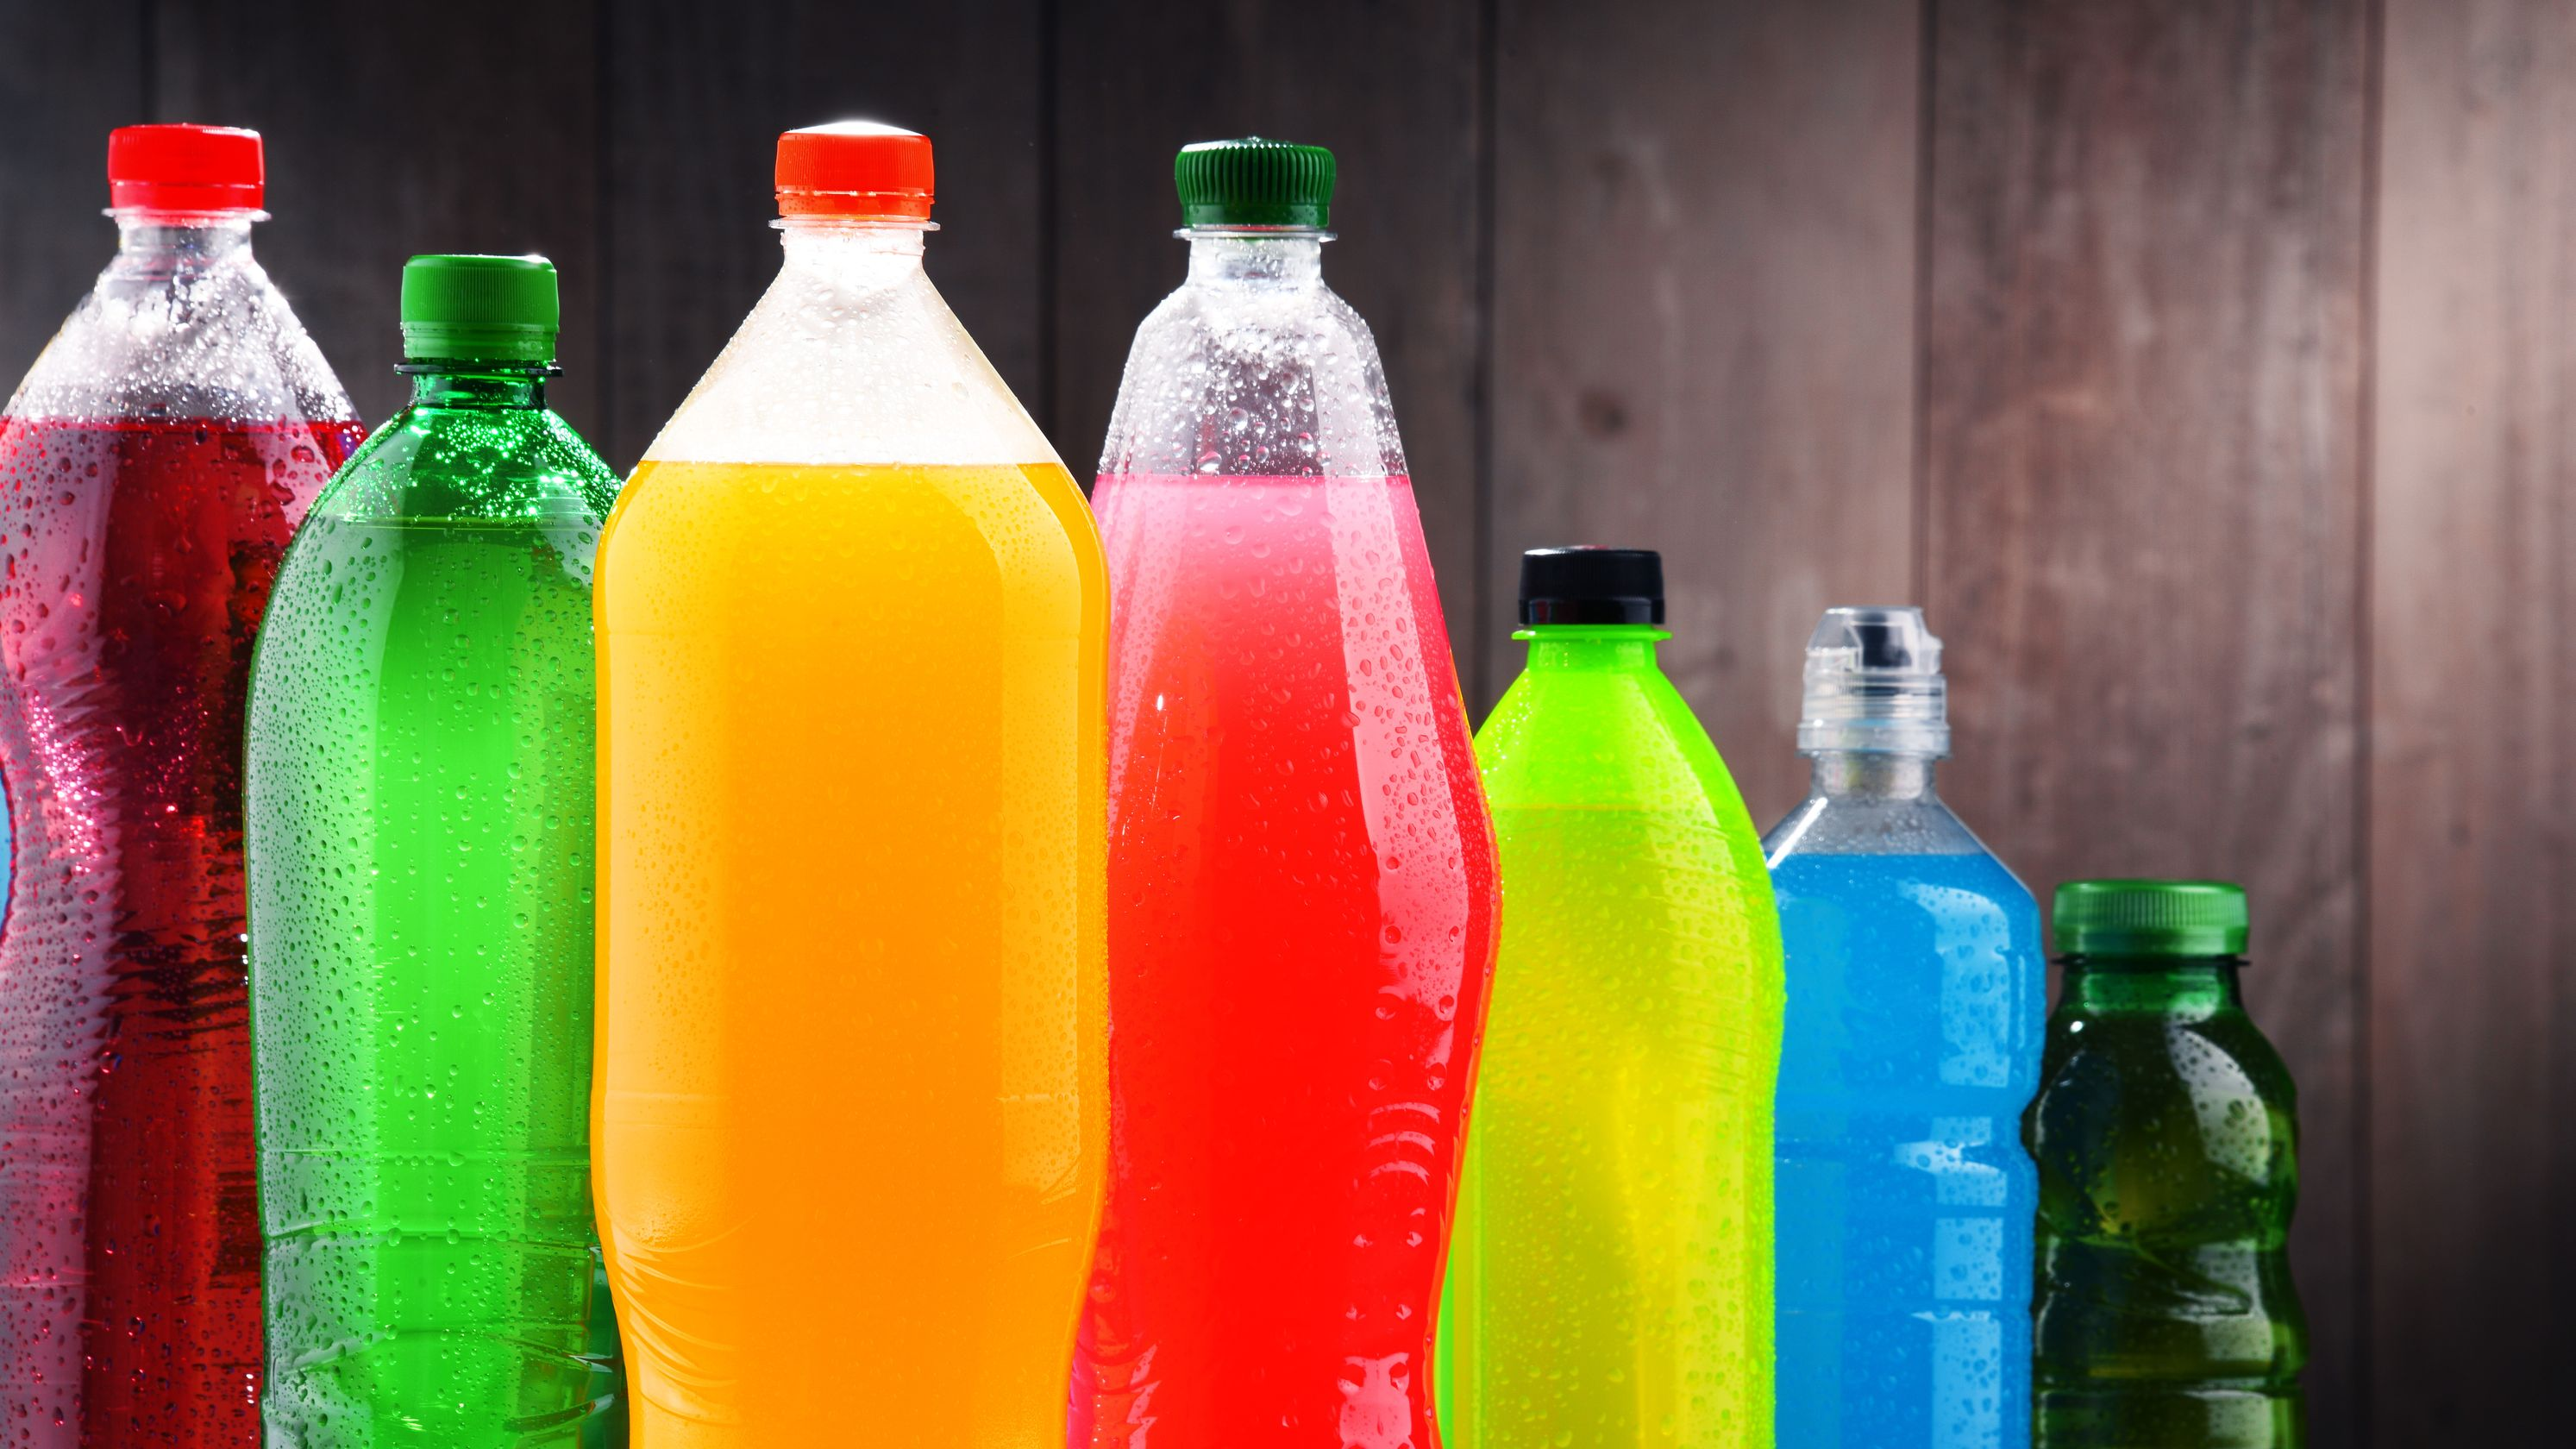 Sweetened Drinks Linked To Increased Death Risk From CVD